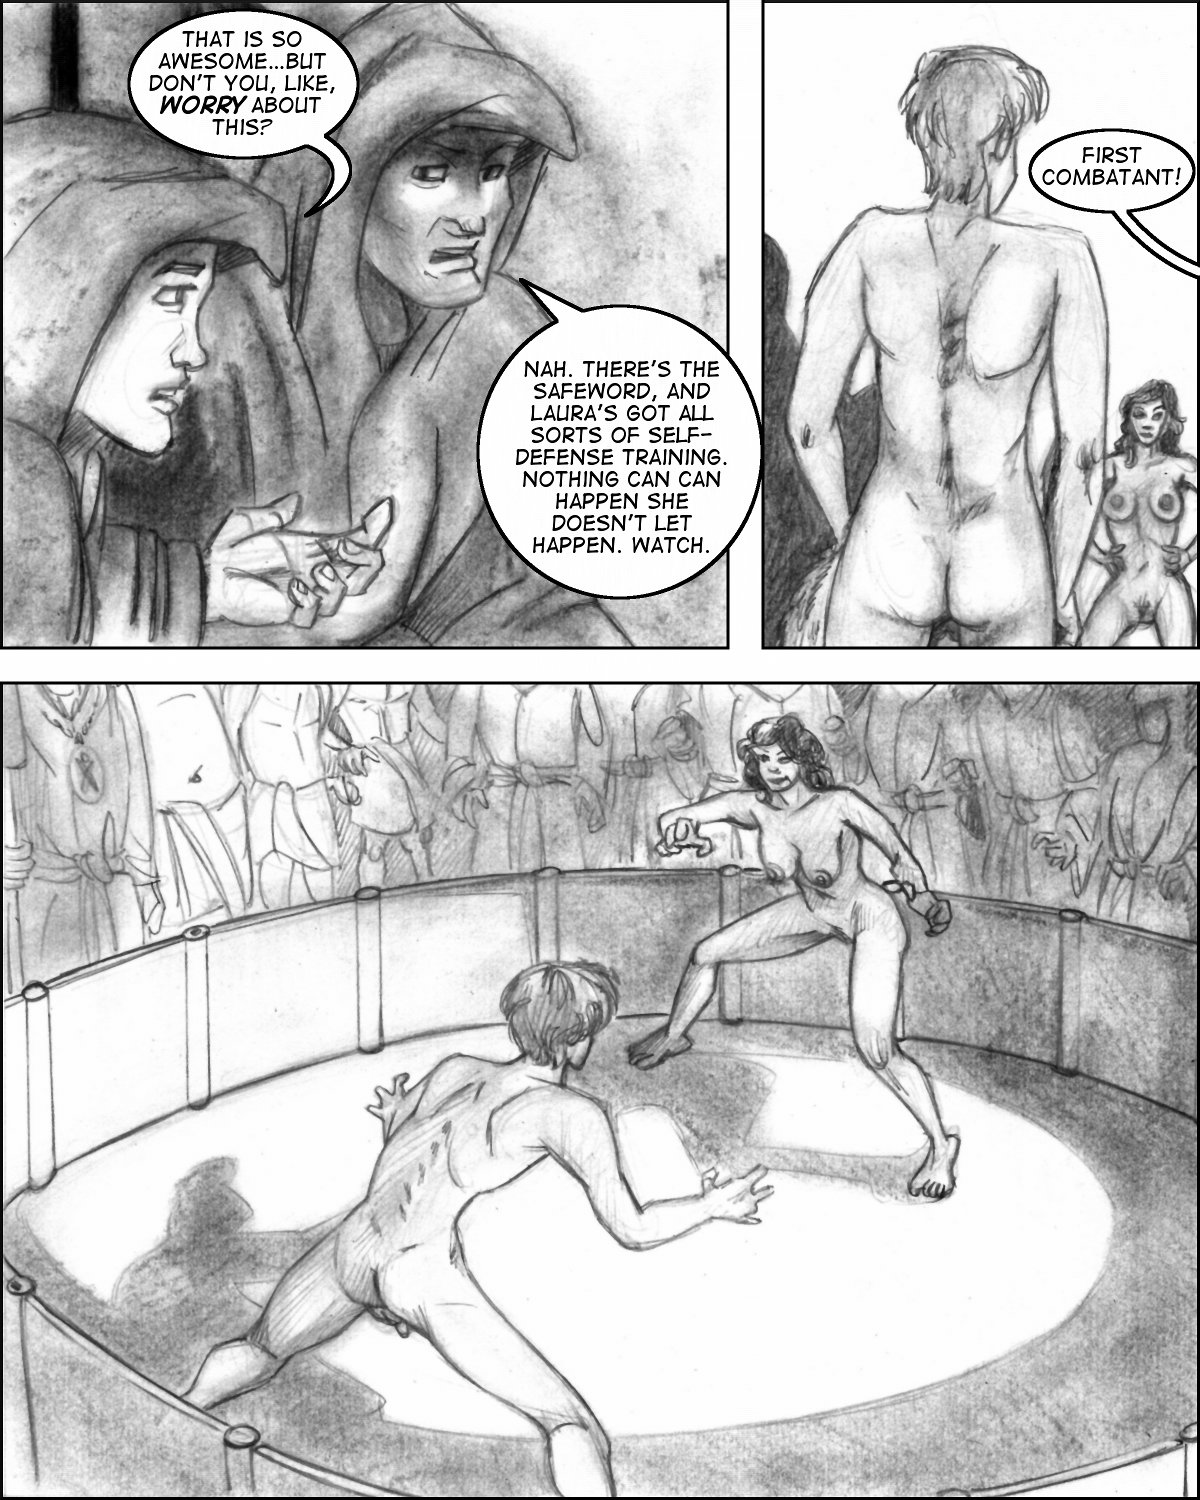 Naked Laura faces off against the first combatant in the Omega initiation.